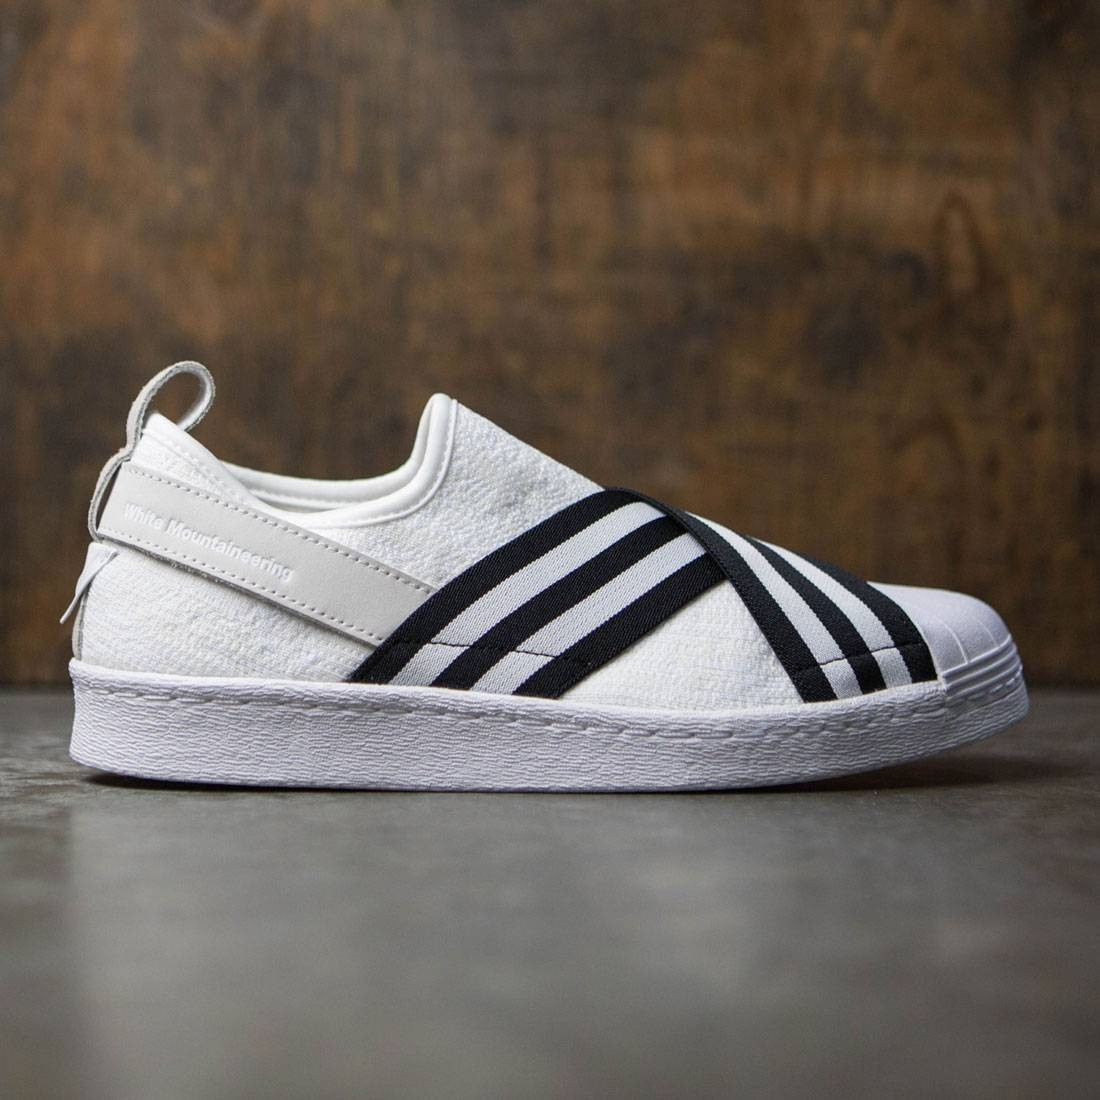 on sale 2e72f 2f9d4 Adidas Men White Mountaineering Superstar Slip-On Primeknit (white / core  black / footwear white)